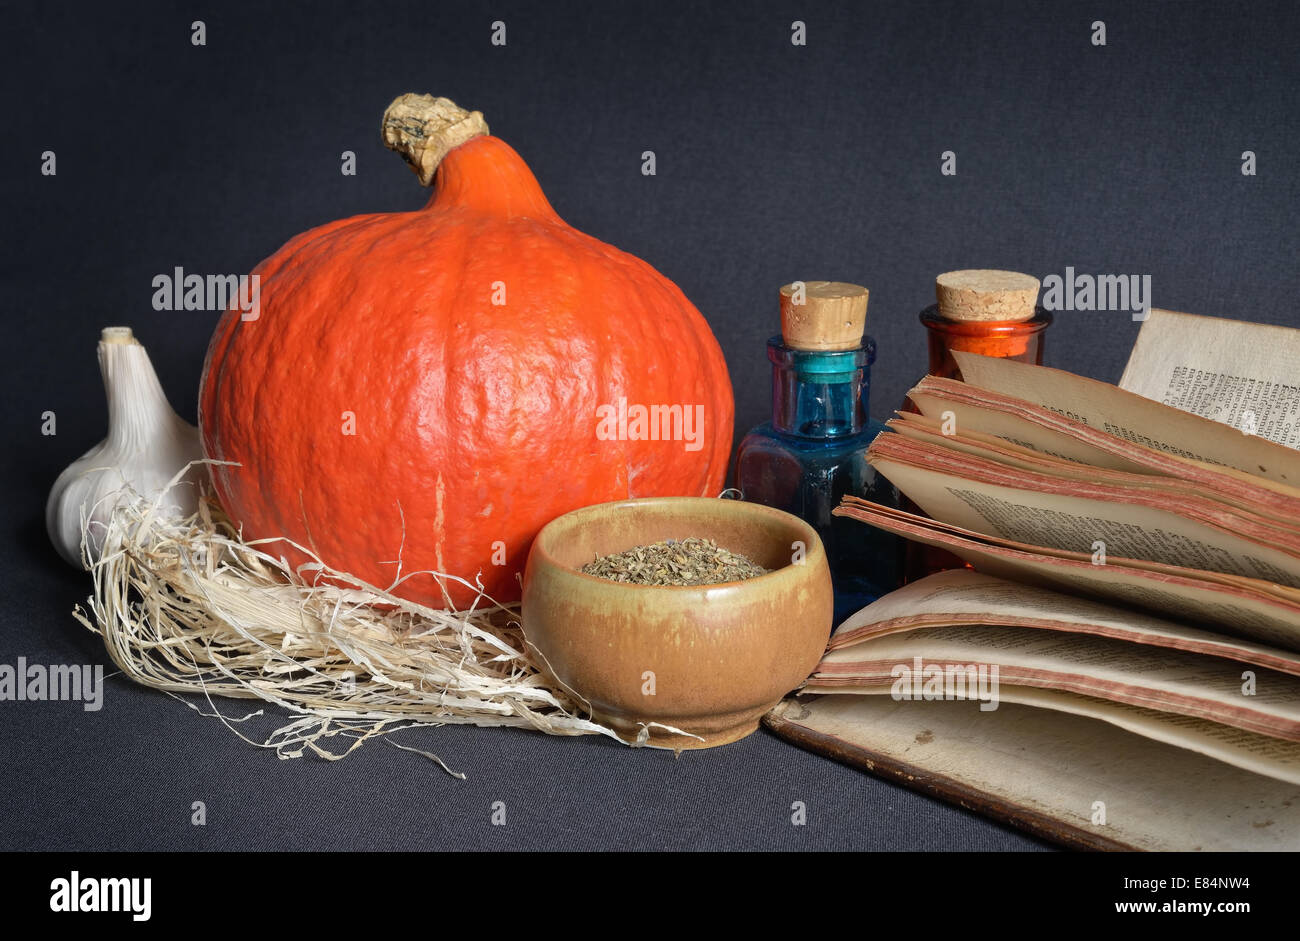 Herbs in ceramic cup, garlic, Halloween pumpkin, antique pharmacy glass and book on dark background - Stock Image